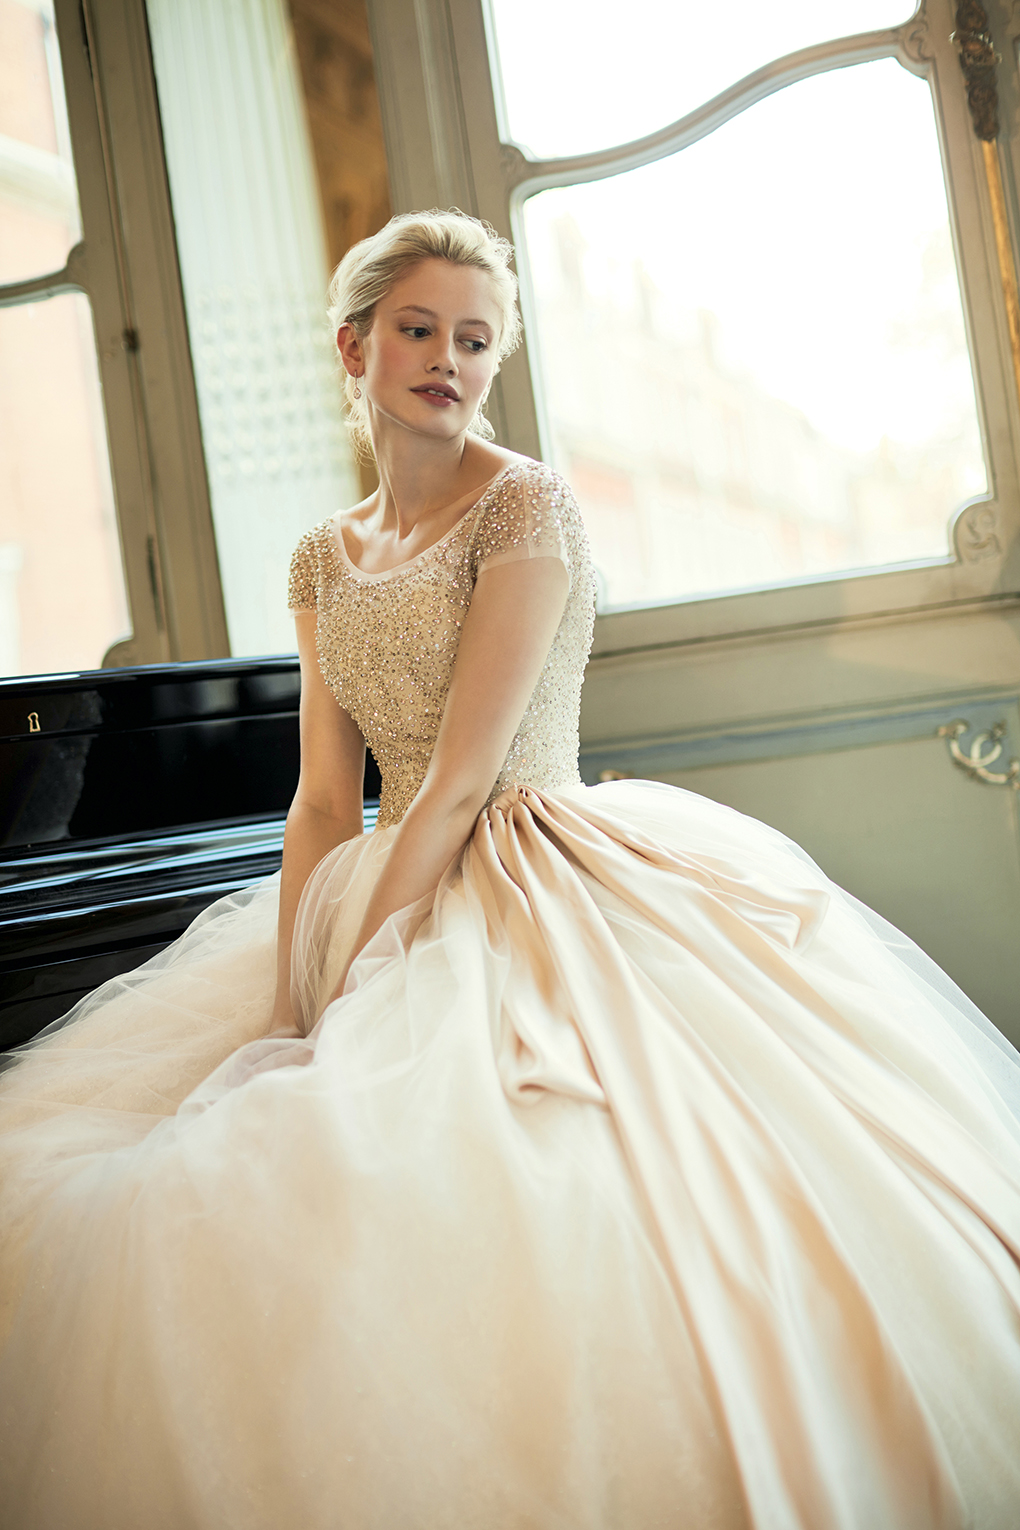 Phillipa Lepley Ballgown wedding dress with Sparkly top and pink bow